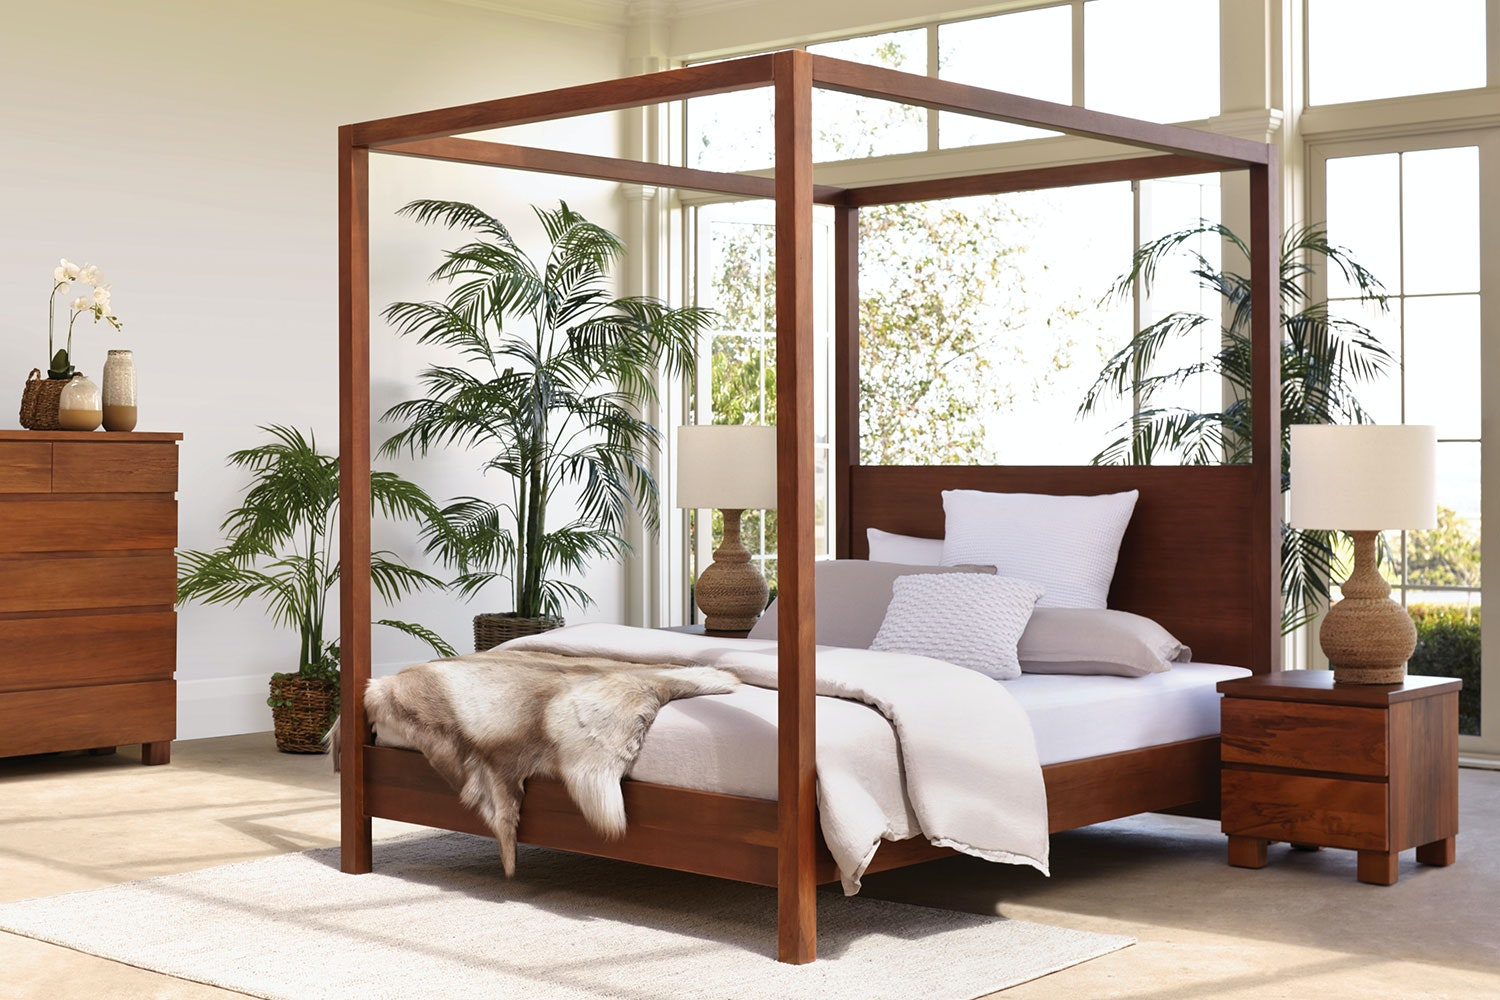 Riverwood 4 Poster Queen Bed Frame By Sorensen Furniture | Harvey Norman  New Zealand